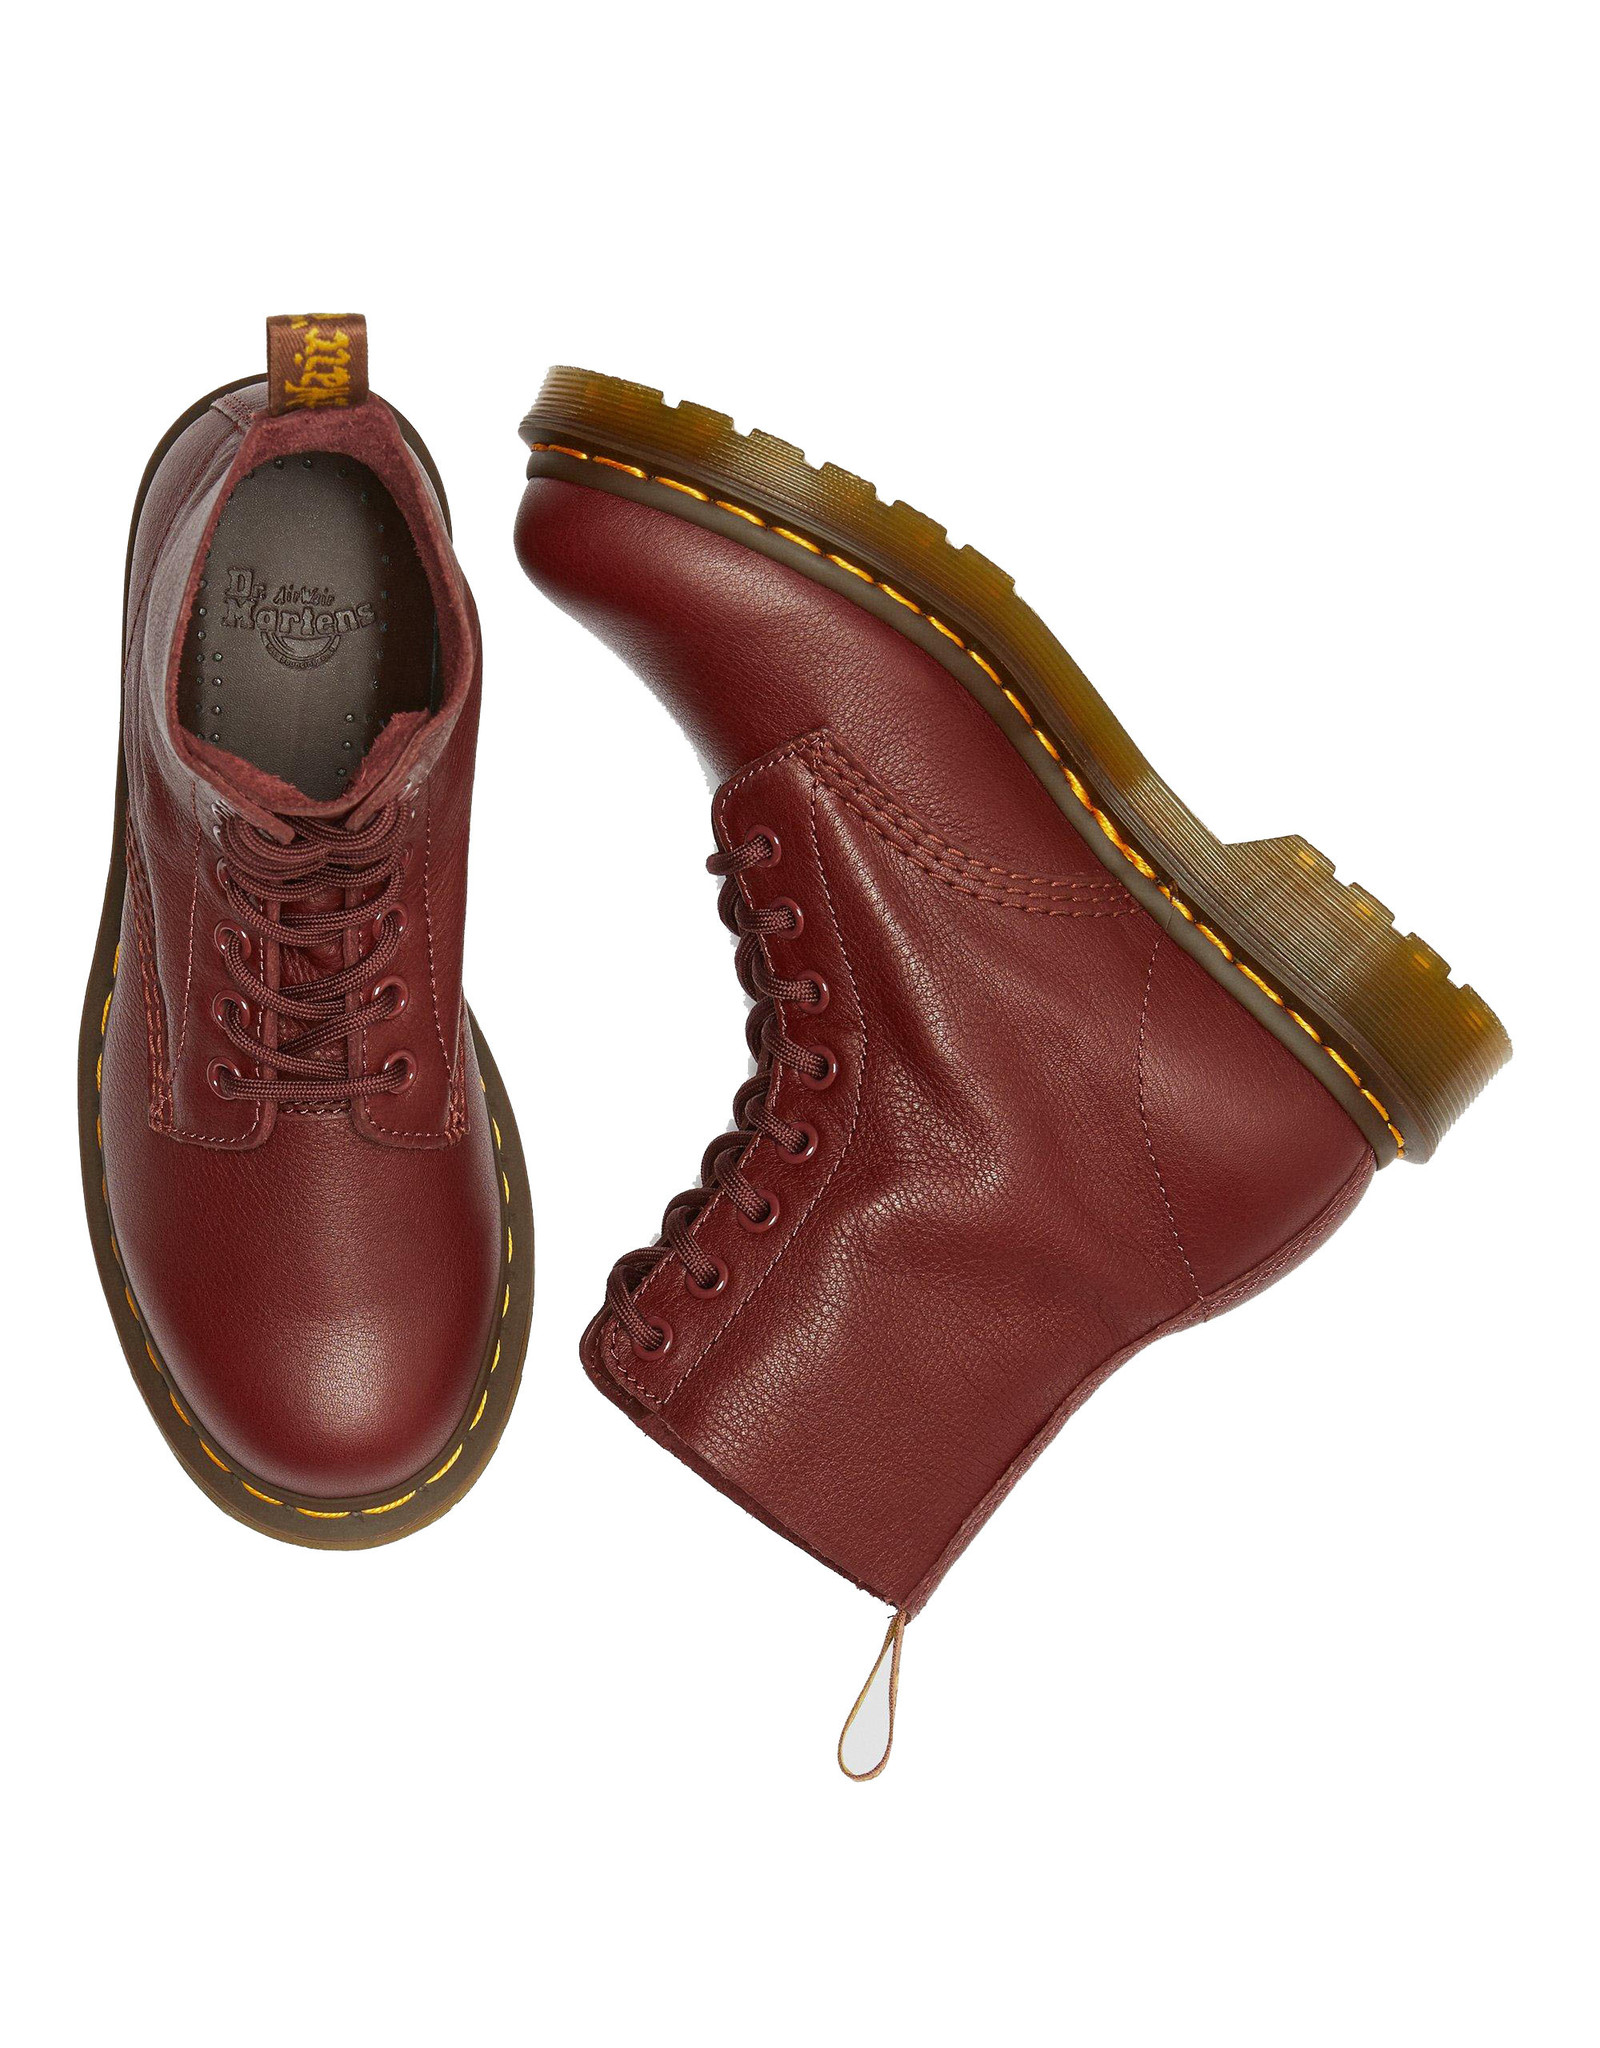 DR. MARTENS PASCAL CHERRY RED VIRGINIA 815CRV-R13512411